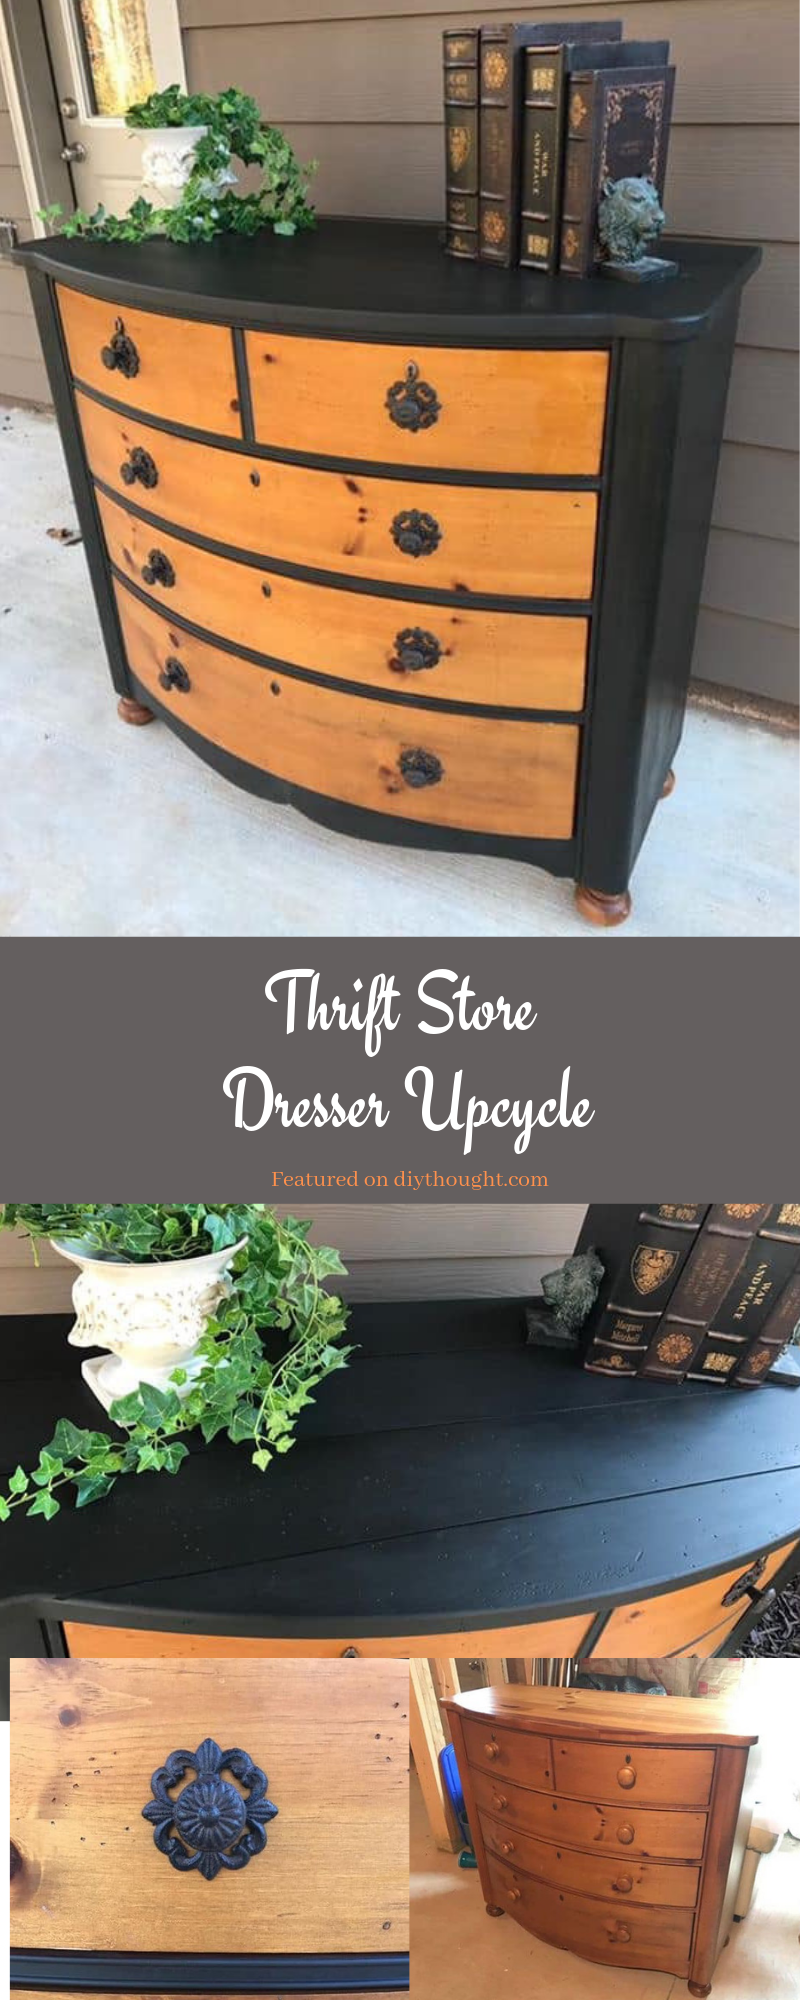 Thrift Store Dresser Upcycle #thriftstoreupcycle